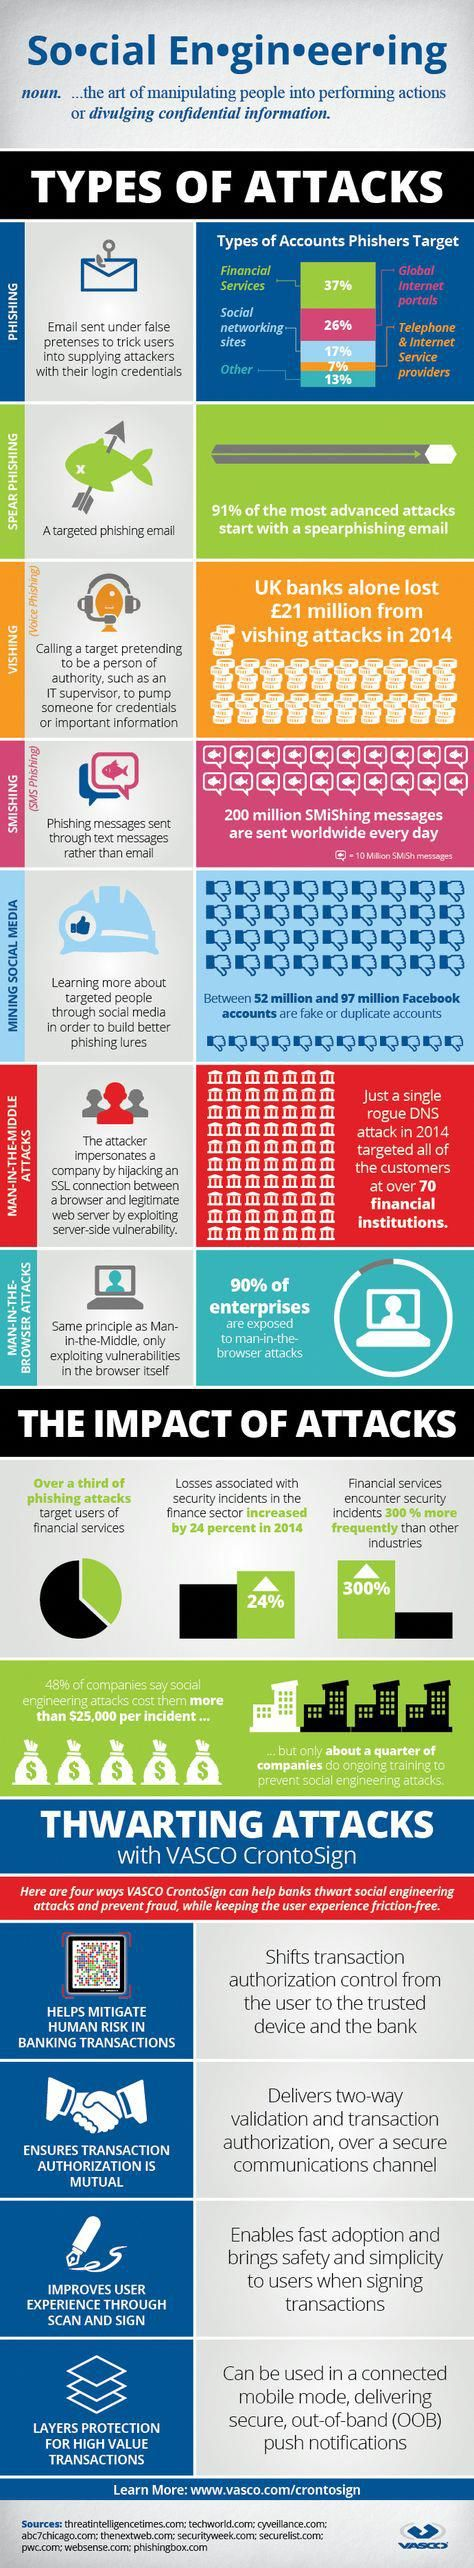 Cyber Security & types of Attacks On-line- #Infographic #malwarelogo